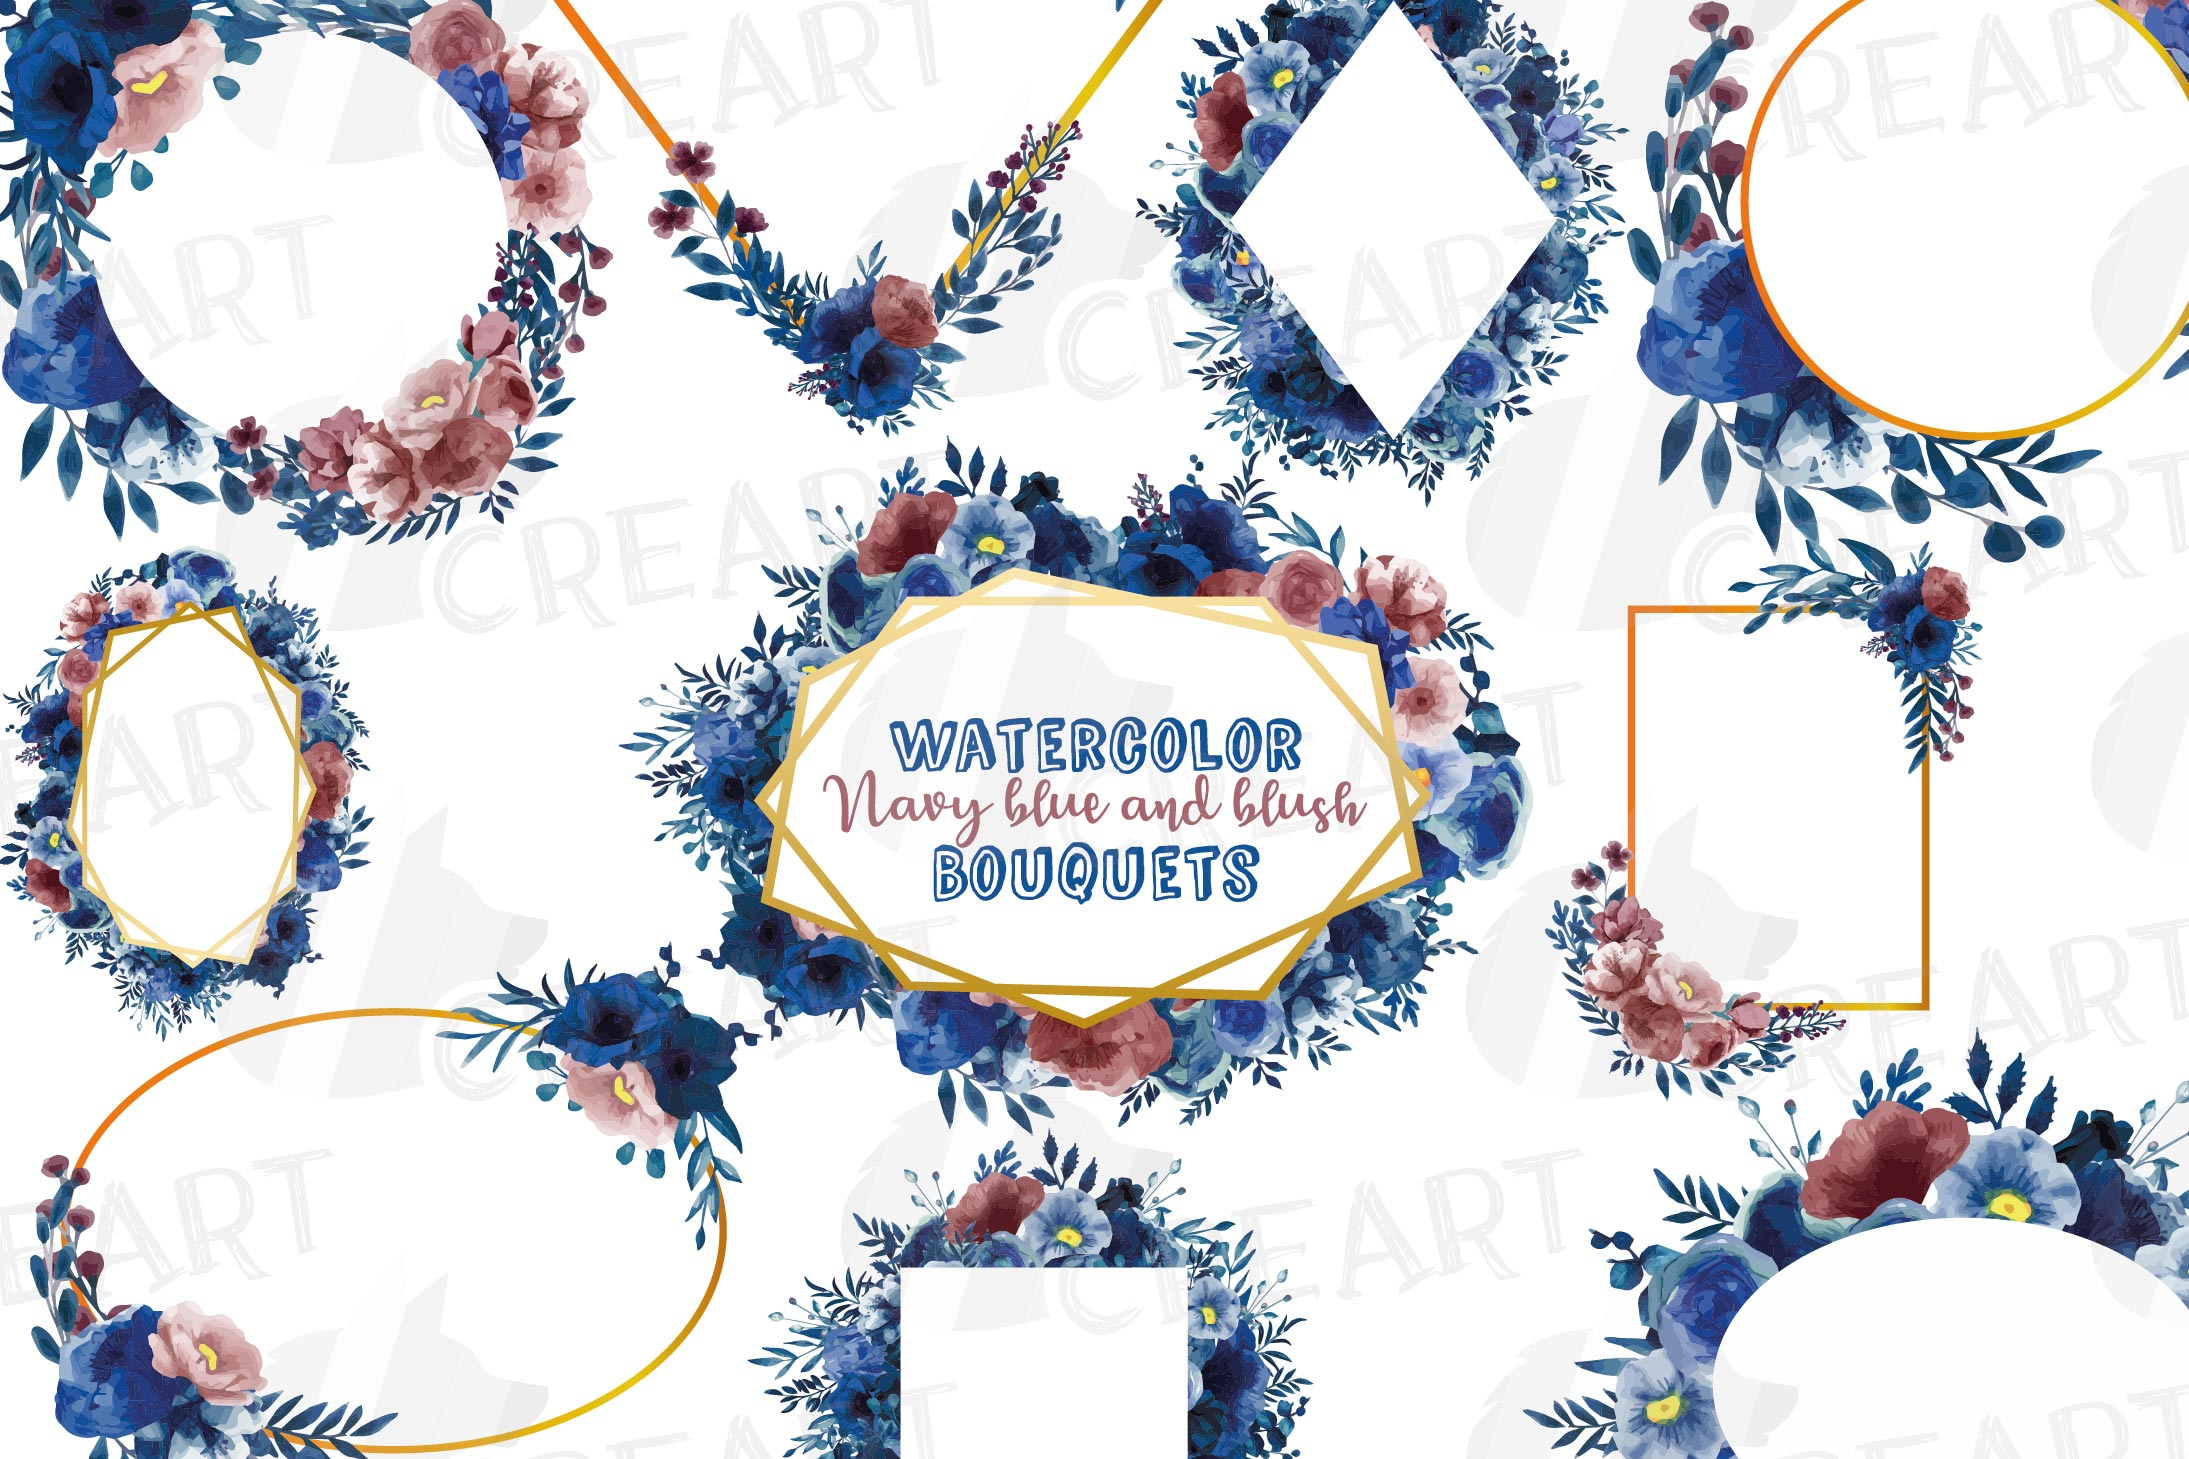 Watercolor elegant navy blue and blush floral borders vector example image 1